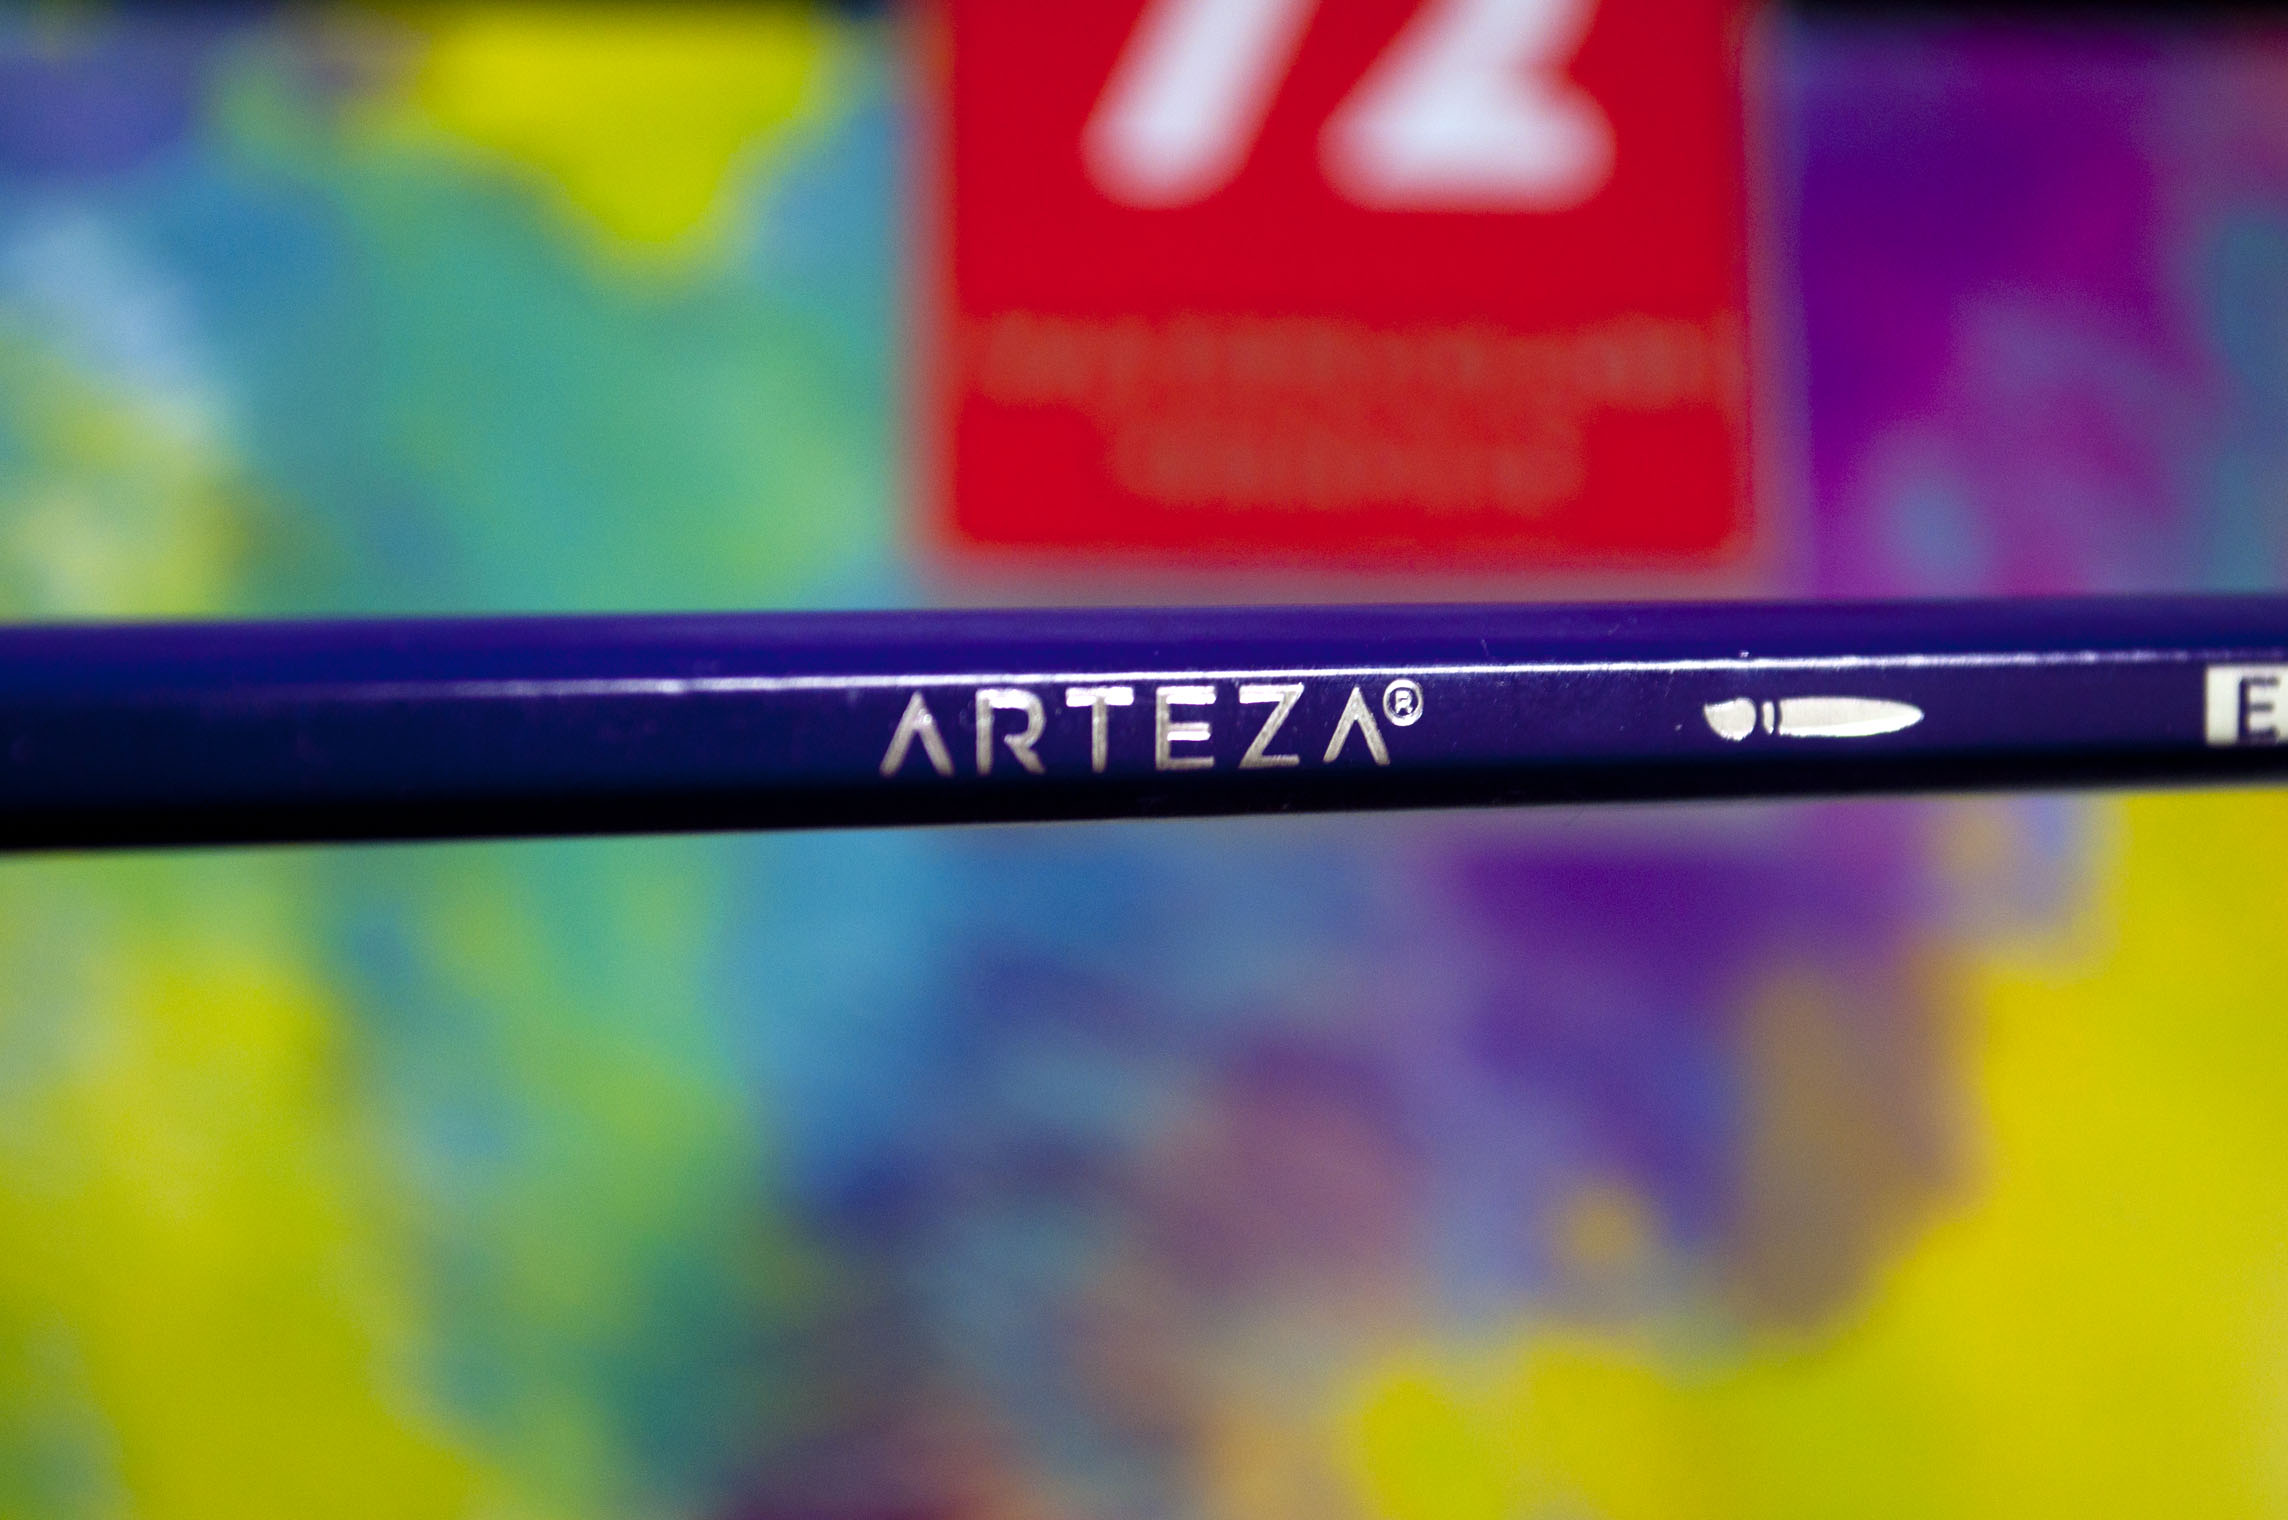 Arteza Logo On Barrel.jpg